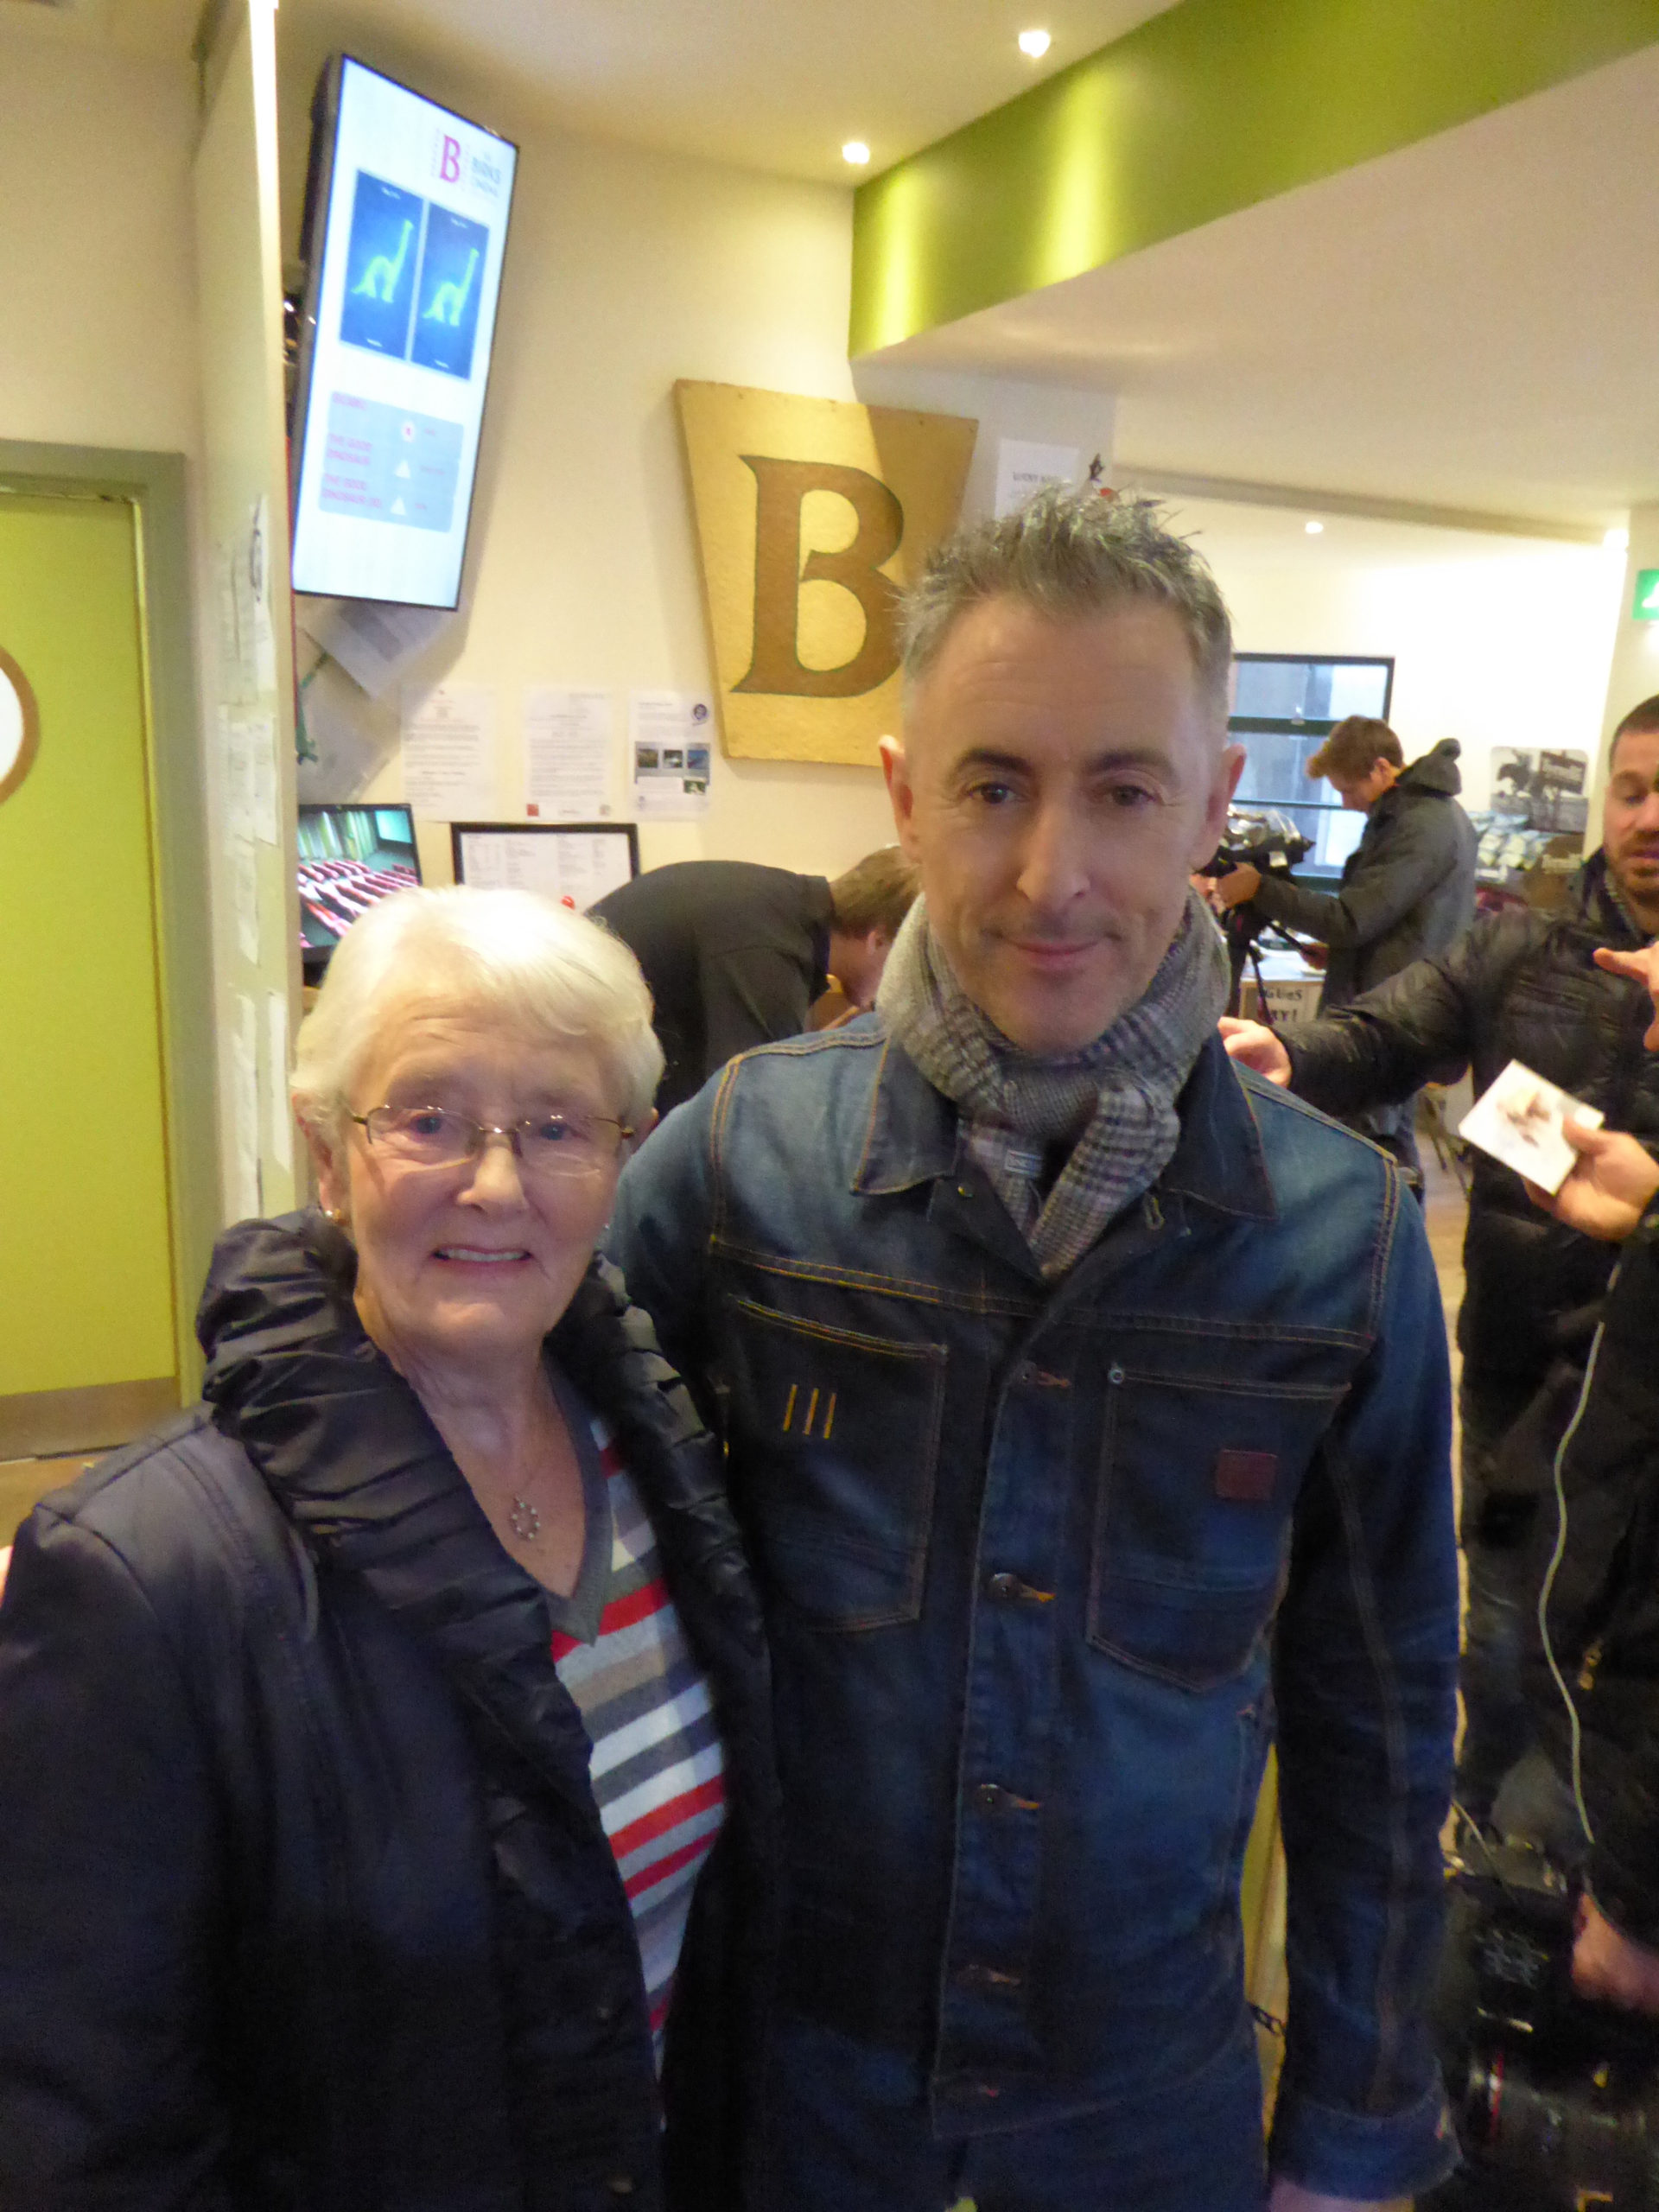 Alan Cumming, with mum Mary Darling, at The Birks Cinema in Aberfeldy.